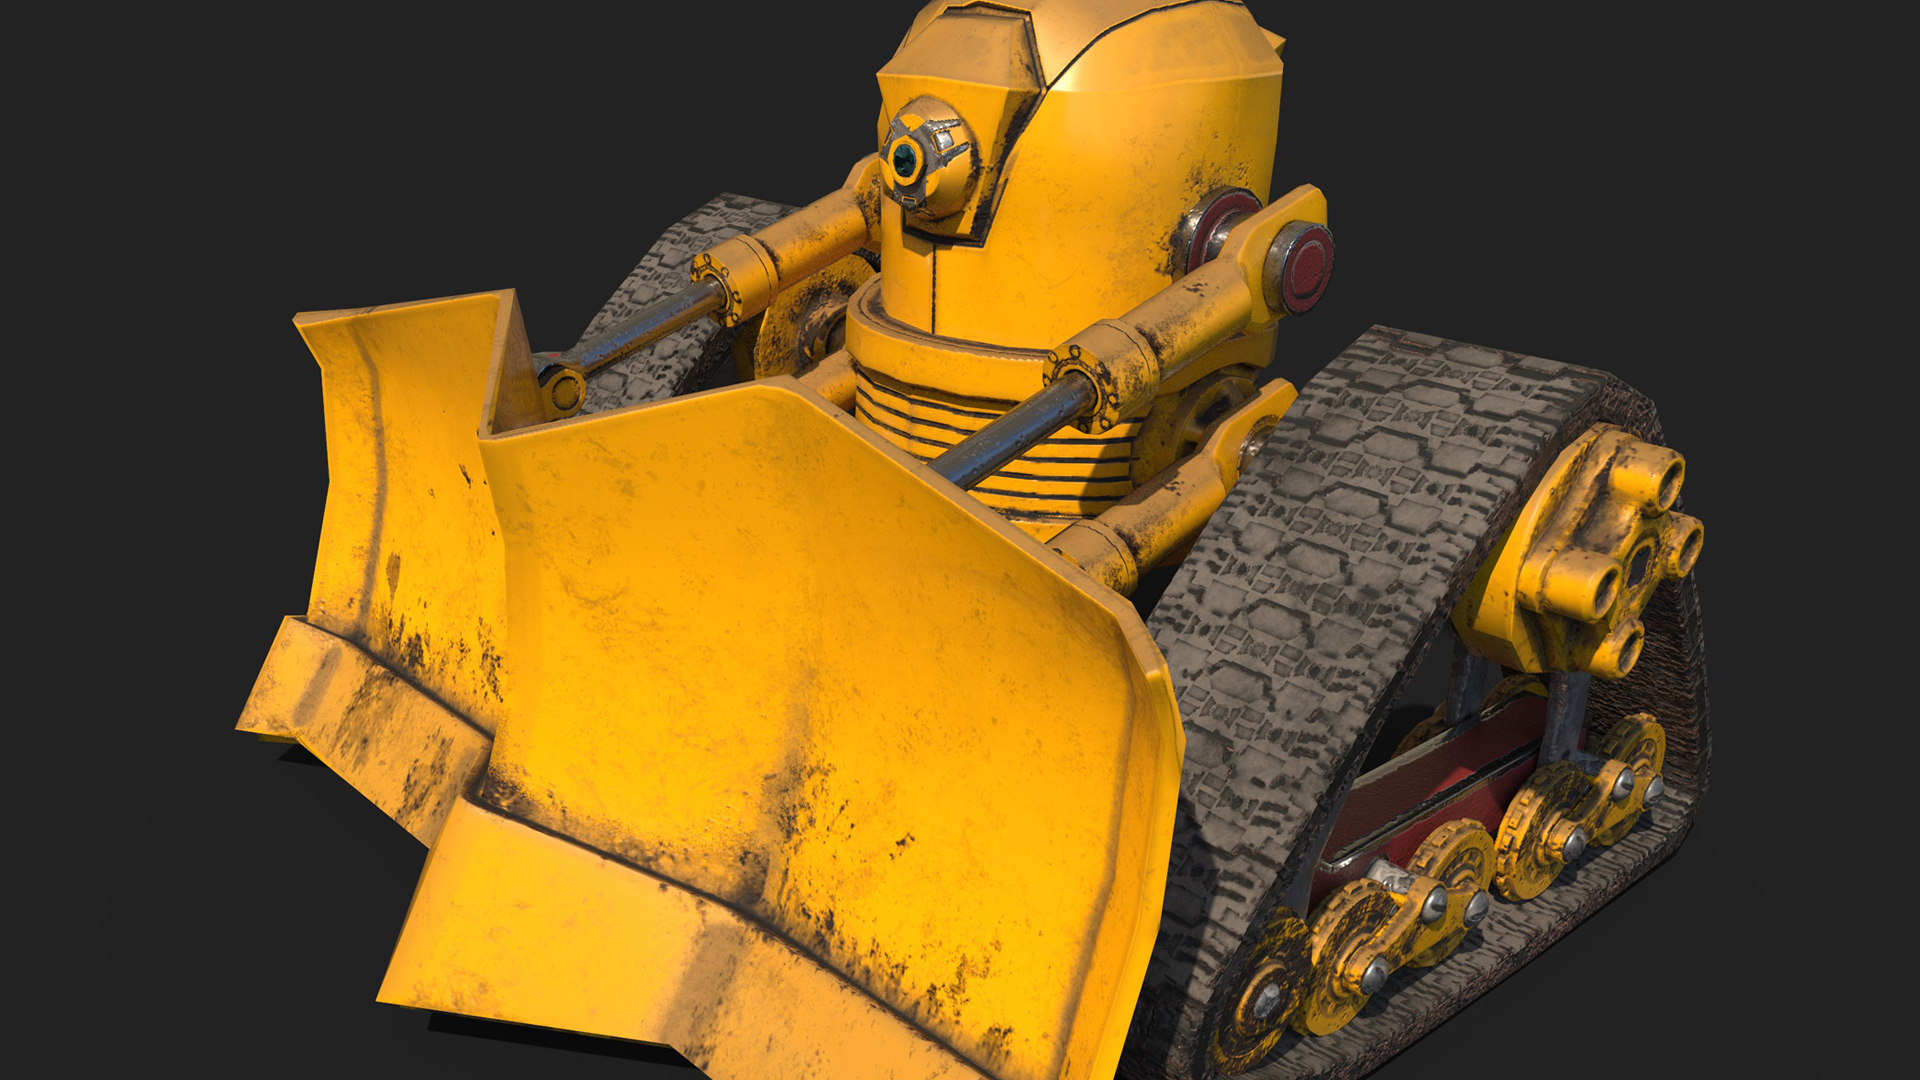 Character Modeling In Blender Lynda : Game art model uv map a low poly character